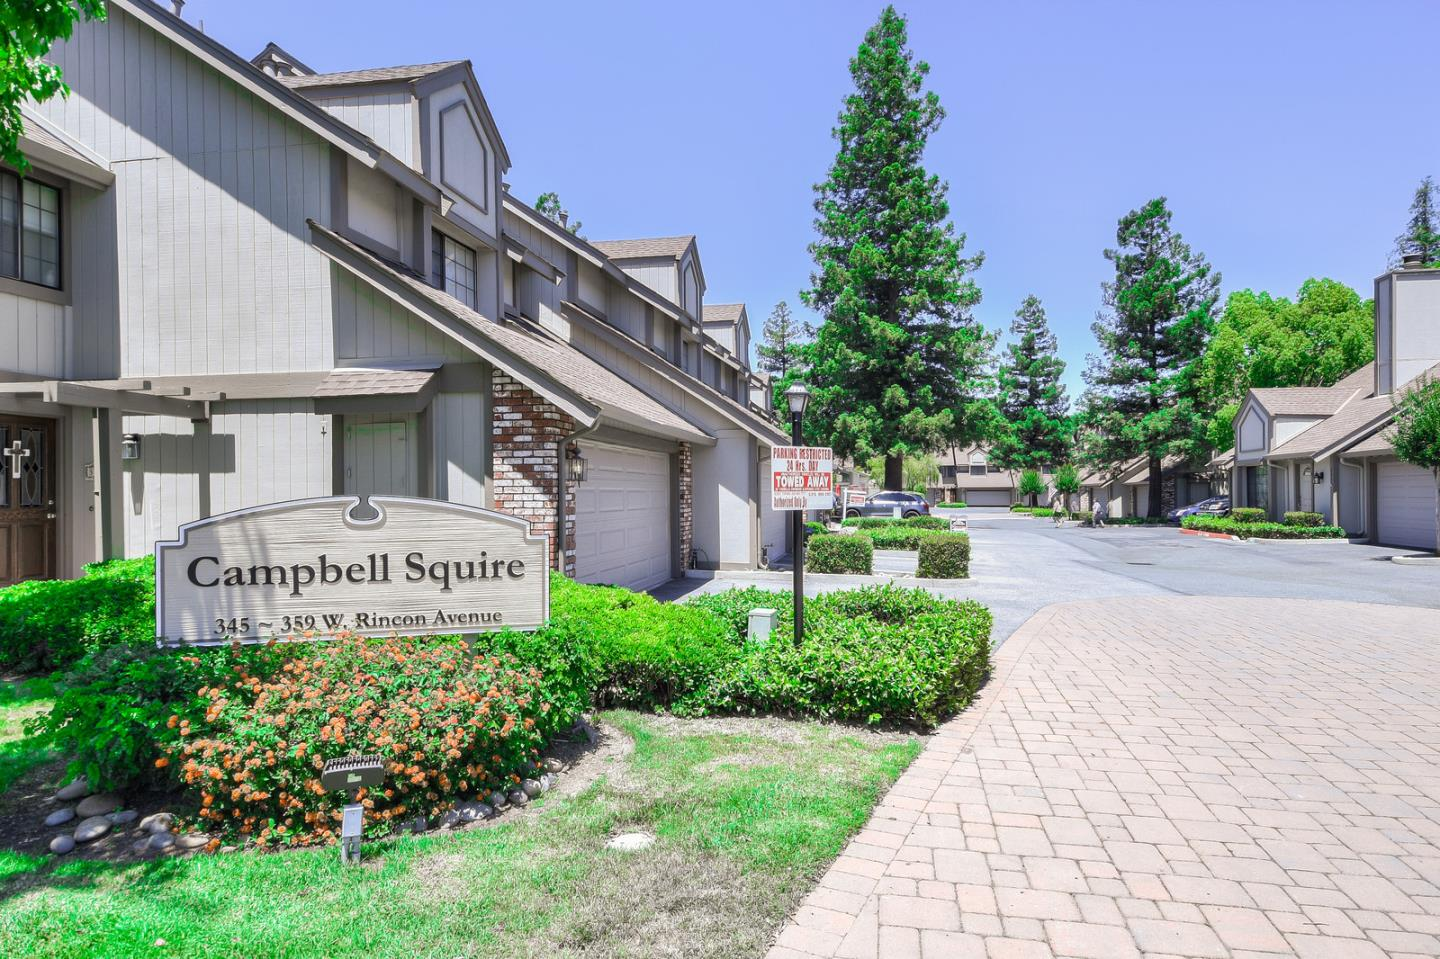 Due to weekend activity, an offer date has been set for Tuesday, Feb 18th at 2 pm. Campbell Squire is a gem of a complex w/ beautiful mature trees framing the pool, spa, & clubhouse common.  Downstairs, you'll find a remodeled kitchen with new quartz countertops & backsplash, updated appliances, recessed lighting.  Plantation shutters, inside laundry, fireplace to keep you toasty in the winter & beautiful private patio to entertain in the spring, summer & fall.  Upstairs, 3 LARGE bedrooms...you'll love the master bedroom w/vaulted ceilings, a remodeled master bathroom, walk-in closet and....wait for it...A MASTER BEDROOM FIREPLACE!  Need an office?  Children's play area?  A place to invent the next big thing?... The area off the upstairs hall is made to order. Commuters can hop on San Tomas in a JIF.  Like what Downtown Campbell has to offer?  Well, downtown Campbell is just a short stroll to the farmer's market, restaurants, and nightlife! 2 car garage PLUS permitted parking space!